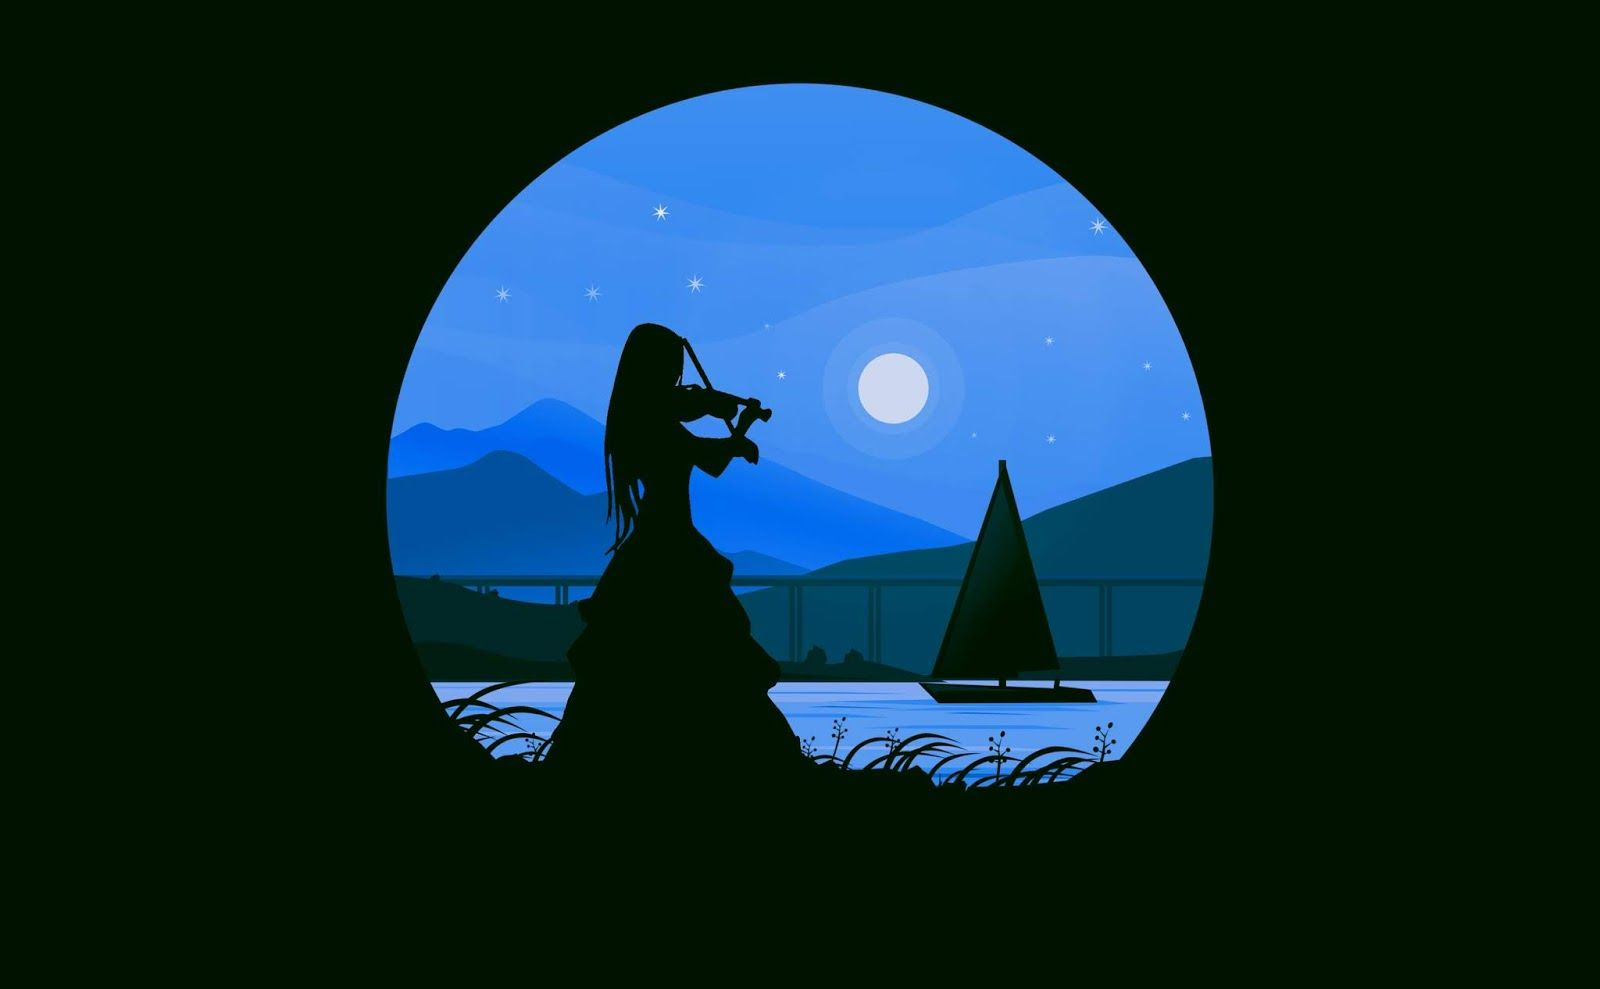 Download Free Images And Illustrations Illustration Of Violinist Play Music Beside The Ri Illustration Violinist Play Music